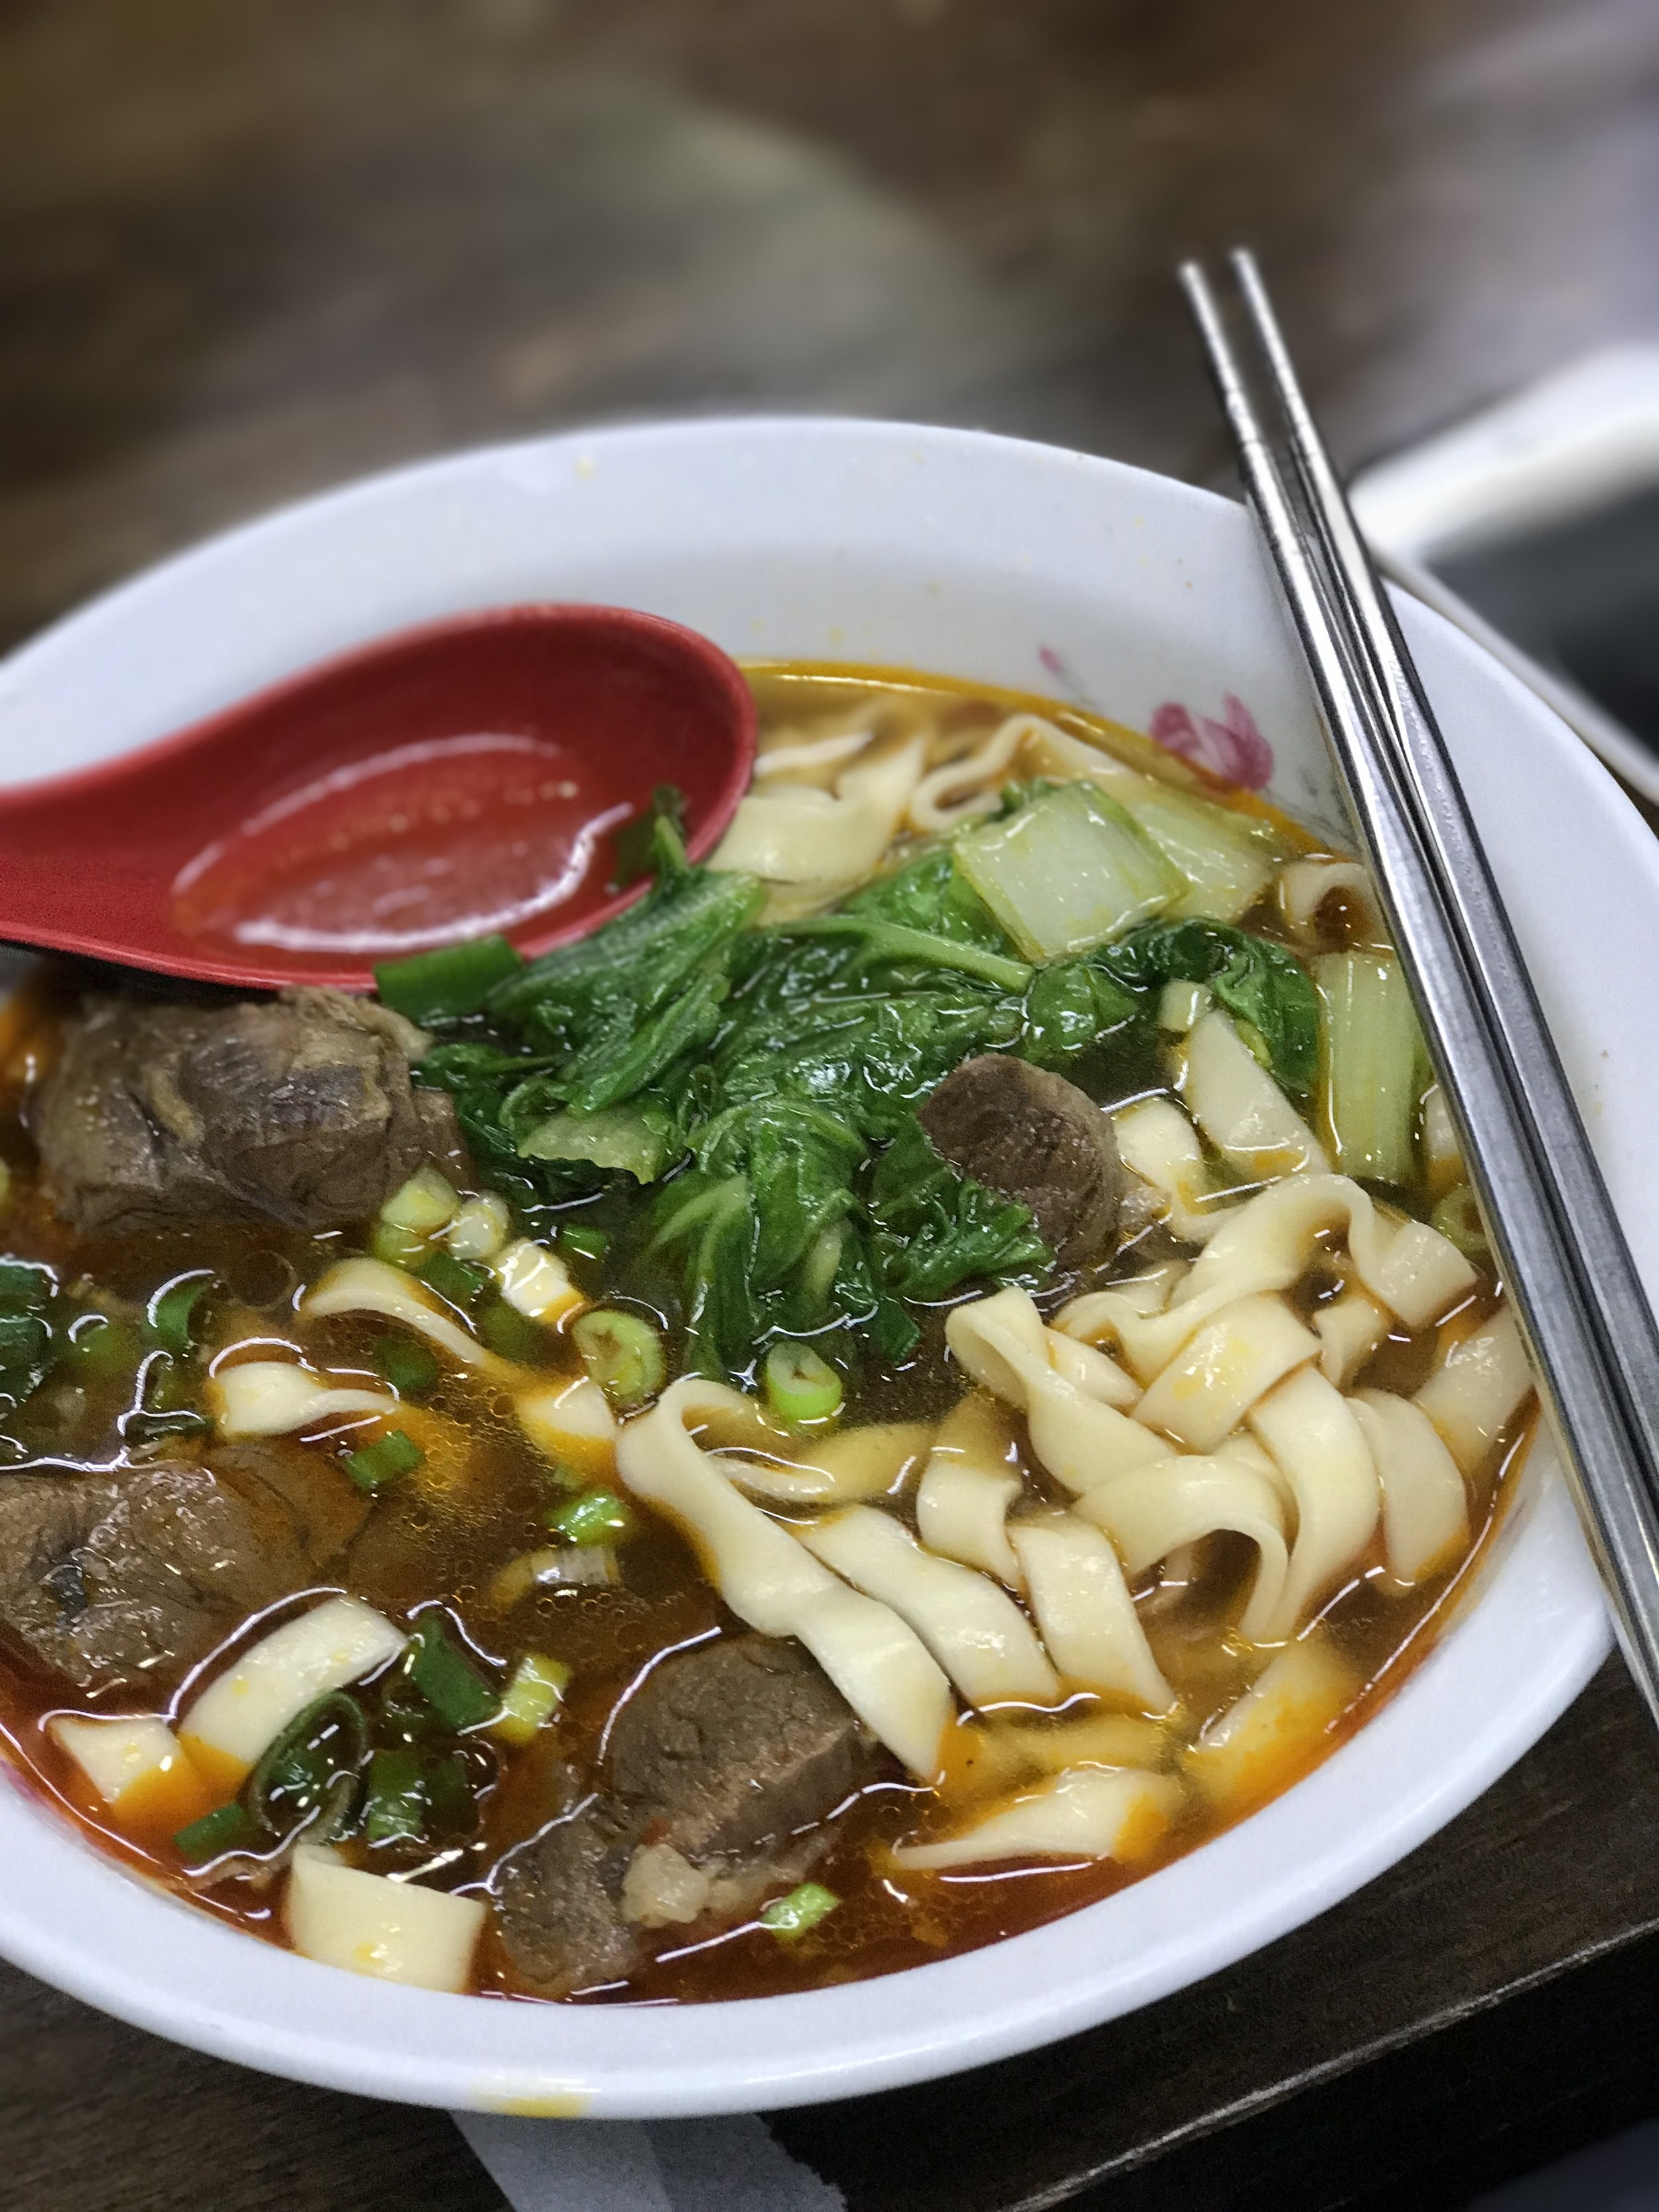 A hot bowl of beef noodle soup, opting for the spicy order, was a fantastic way to end our ride.